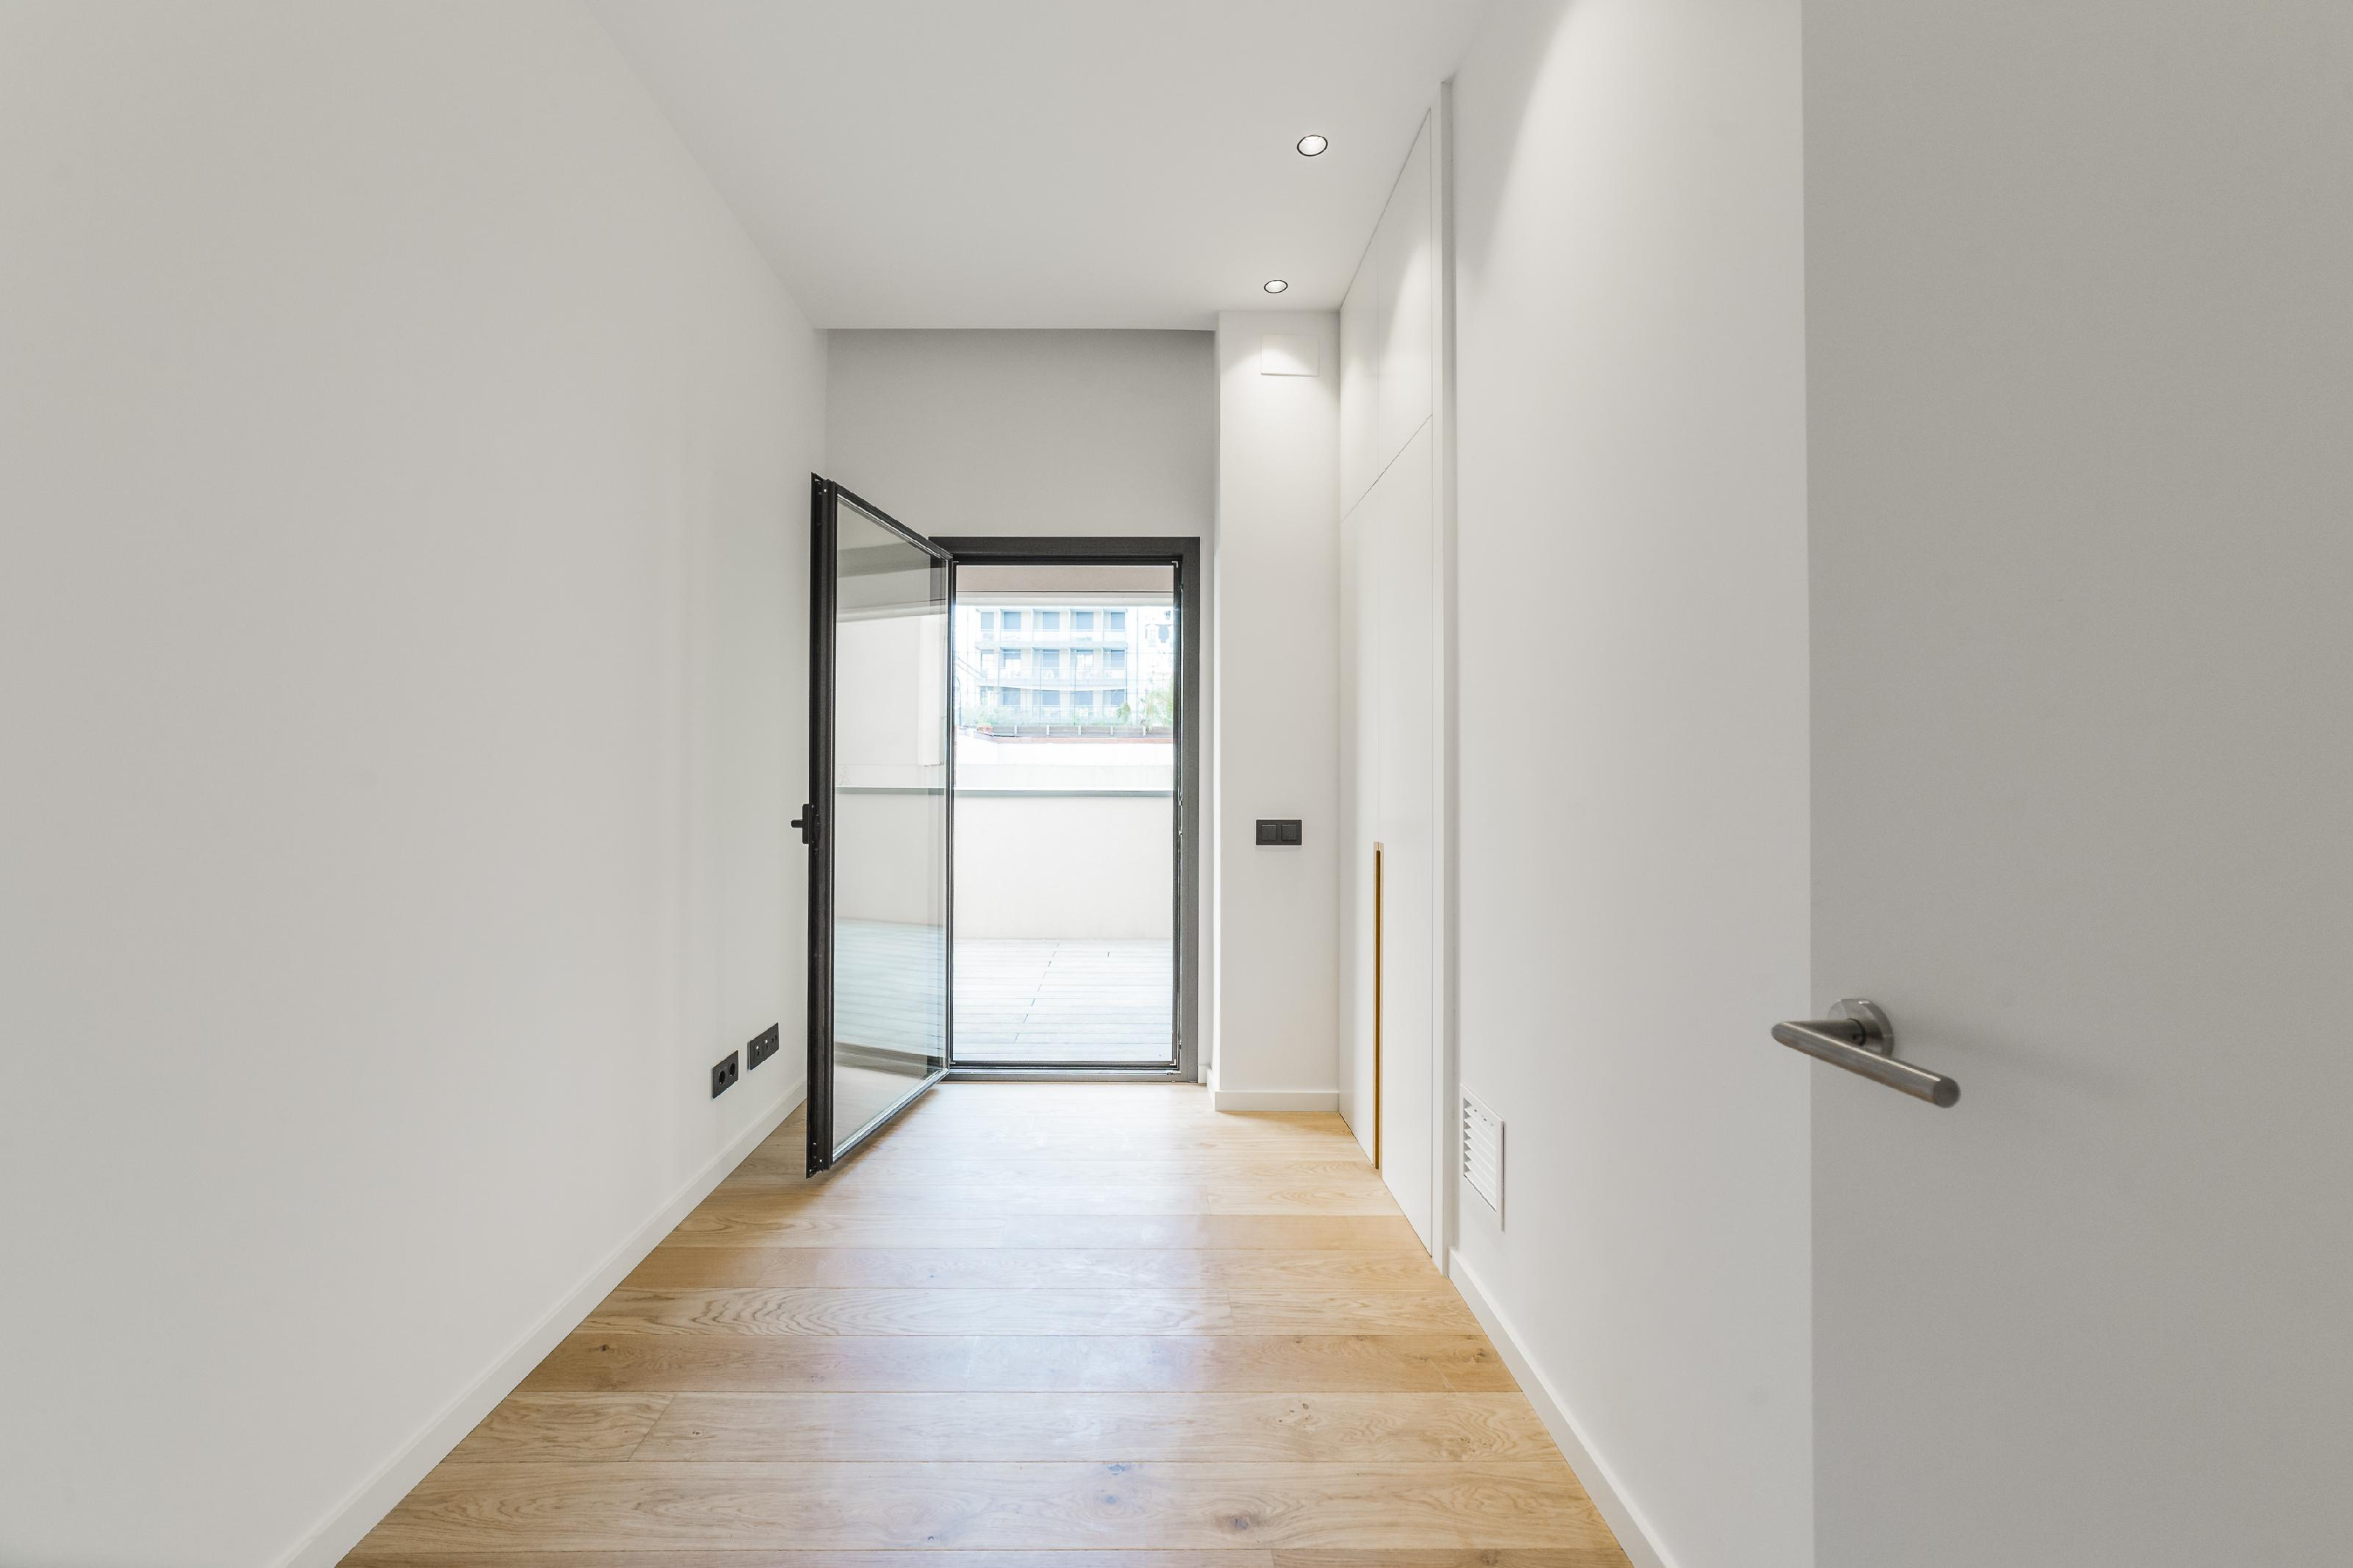 182176 Apartment for sale in Eixample, Old Left Eixample 26